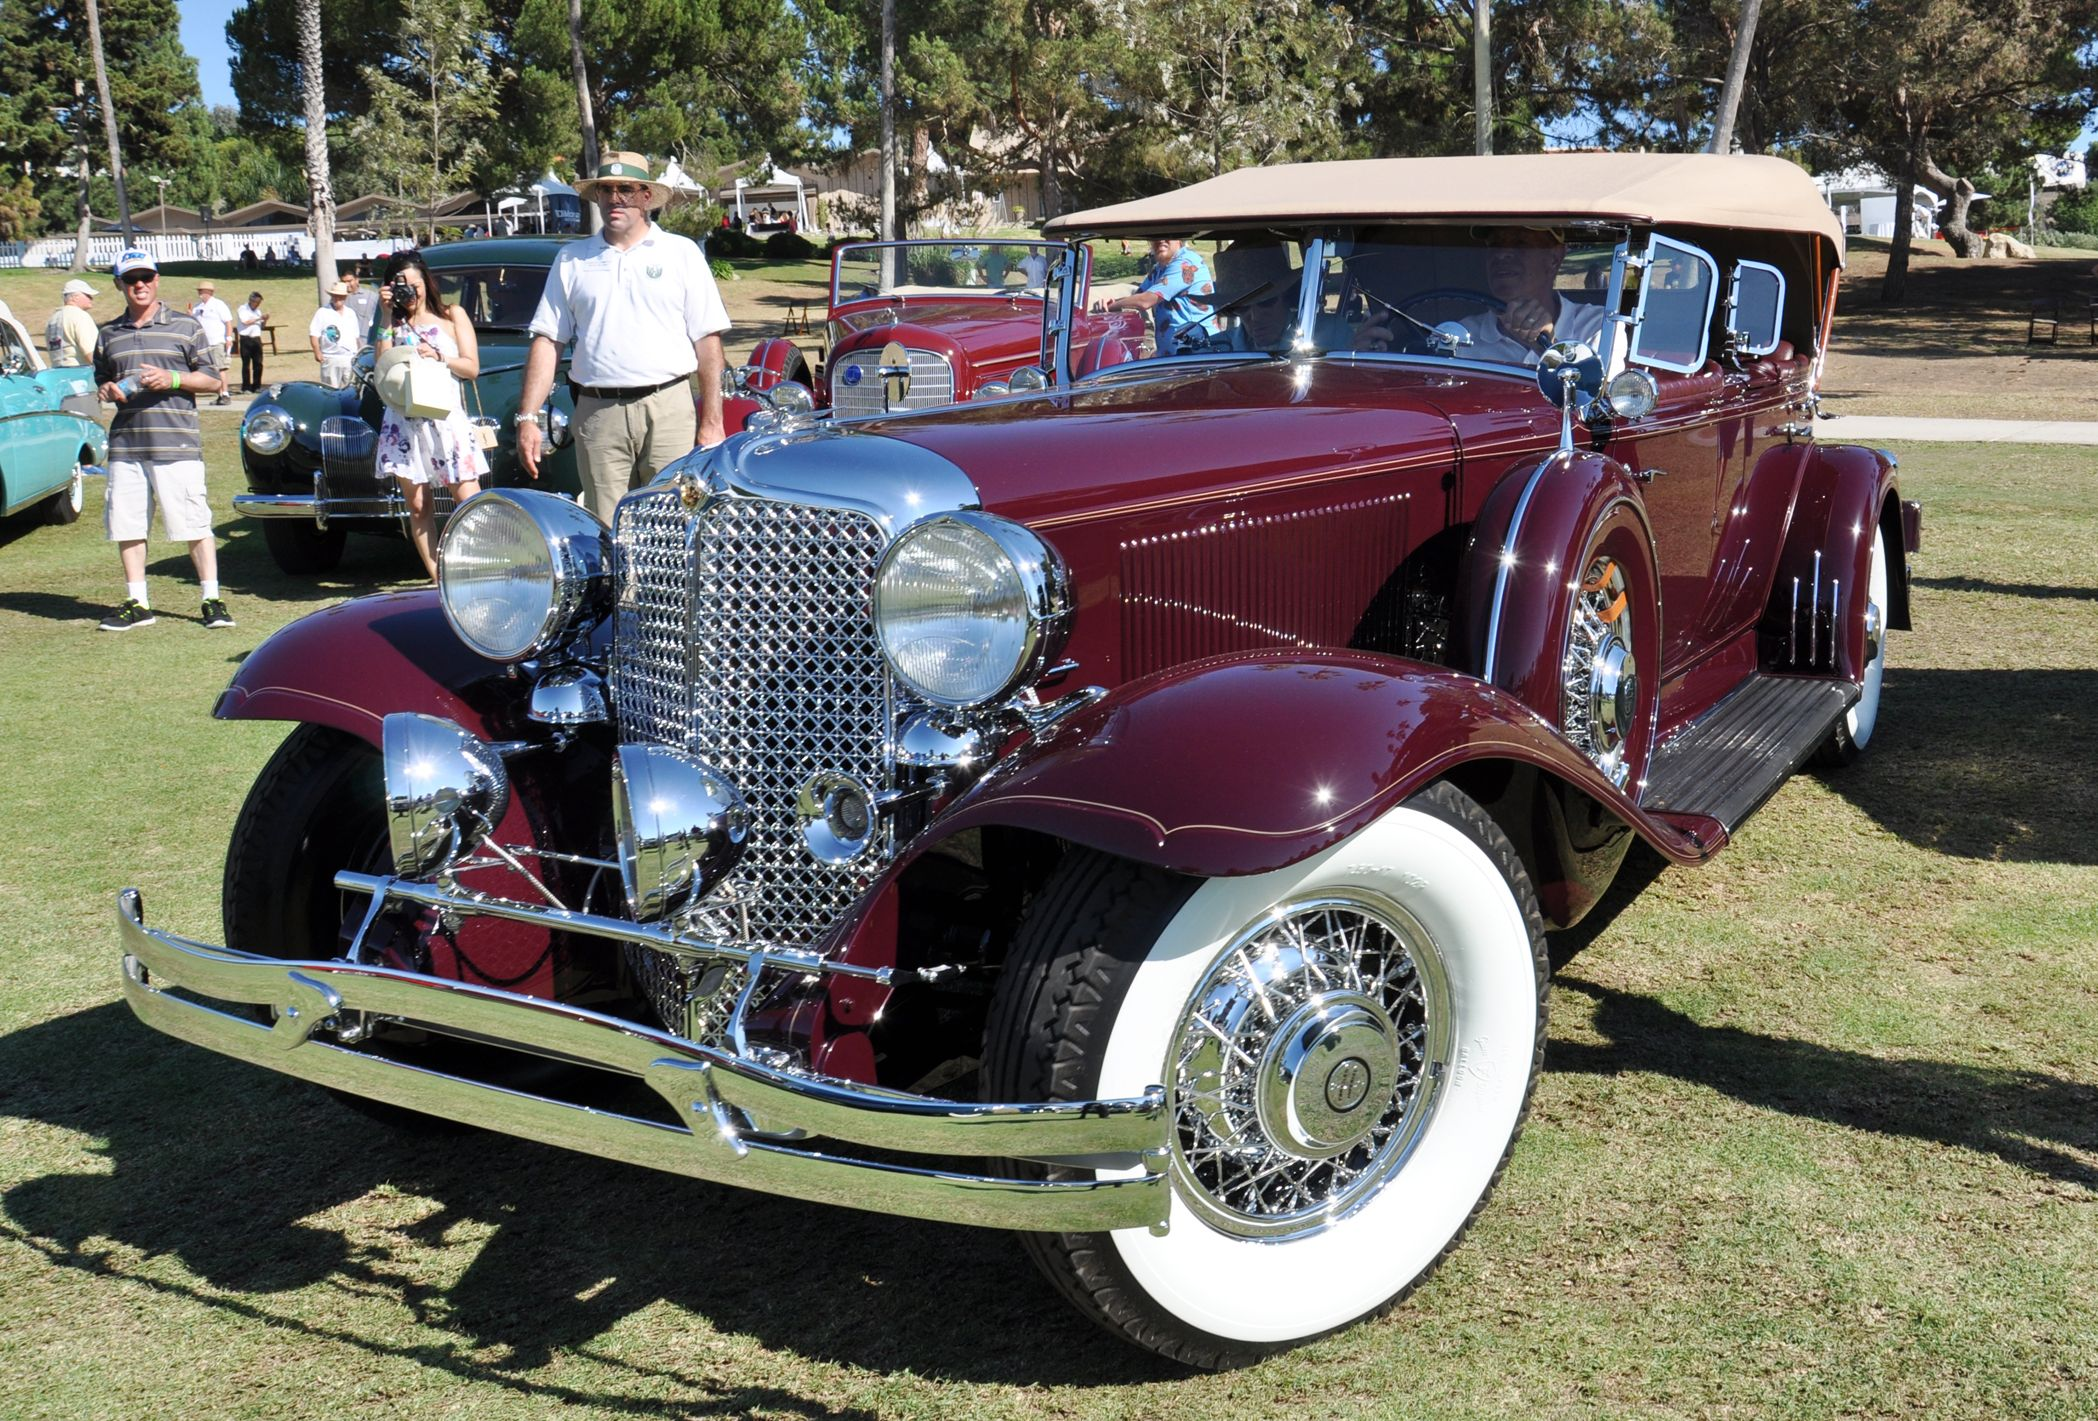 1931 Chrysler Imperial Backgrounds, Compatible - PC, Mobile, Gadgets| 2098x1421 px